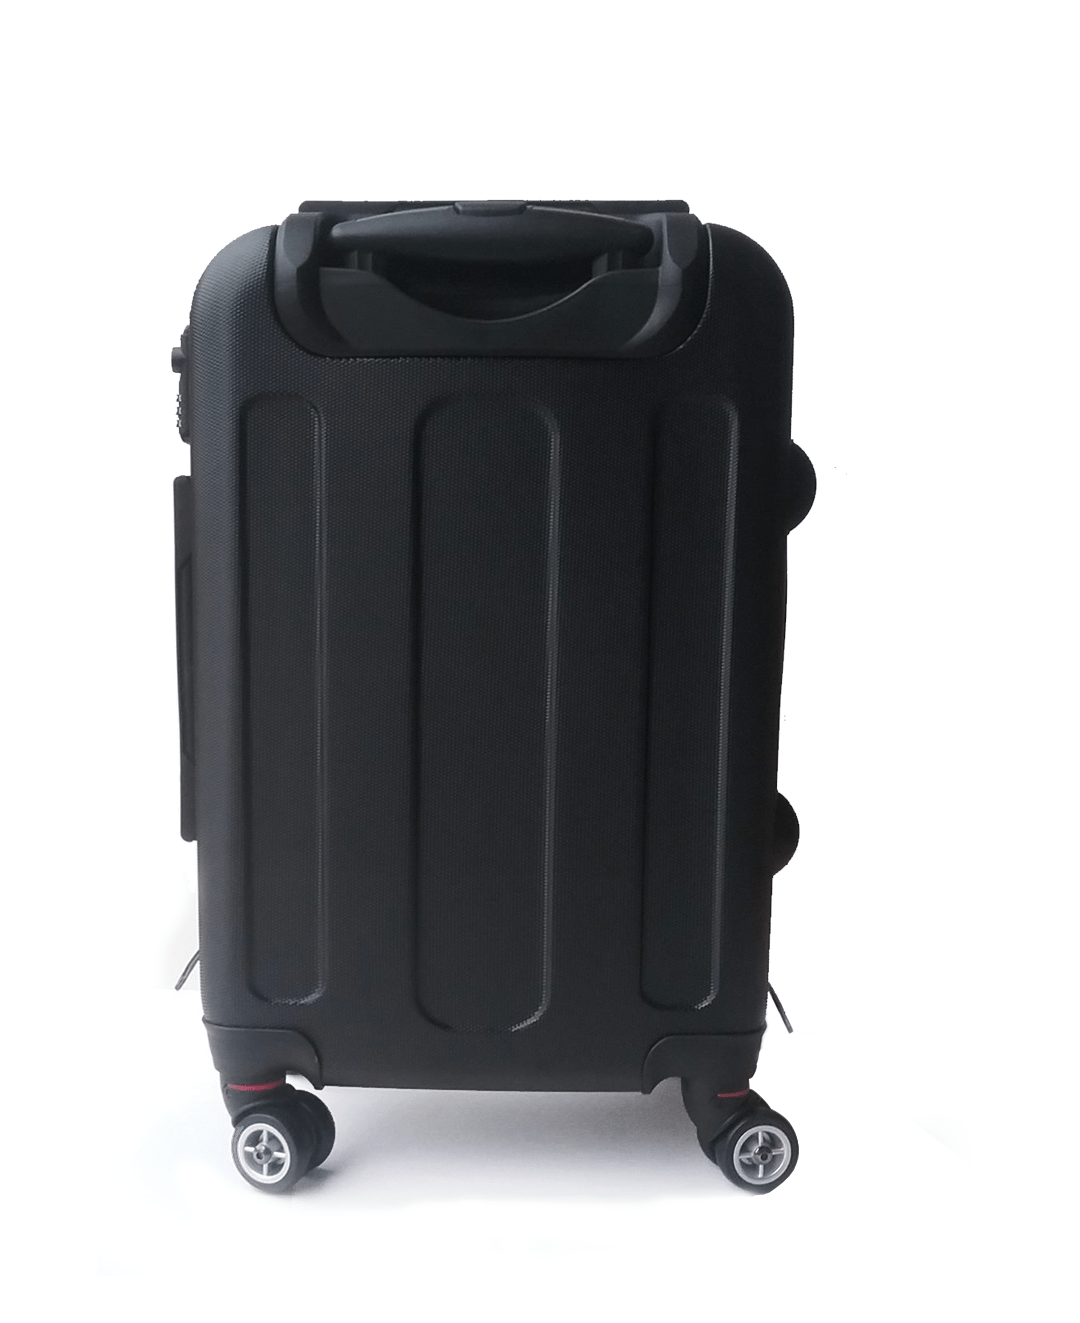 Kids Luggage KS0032